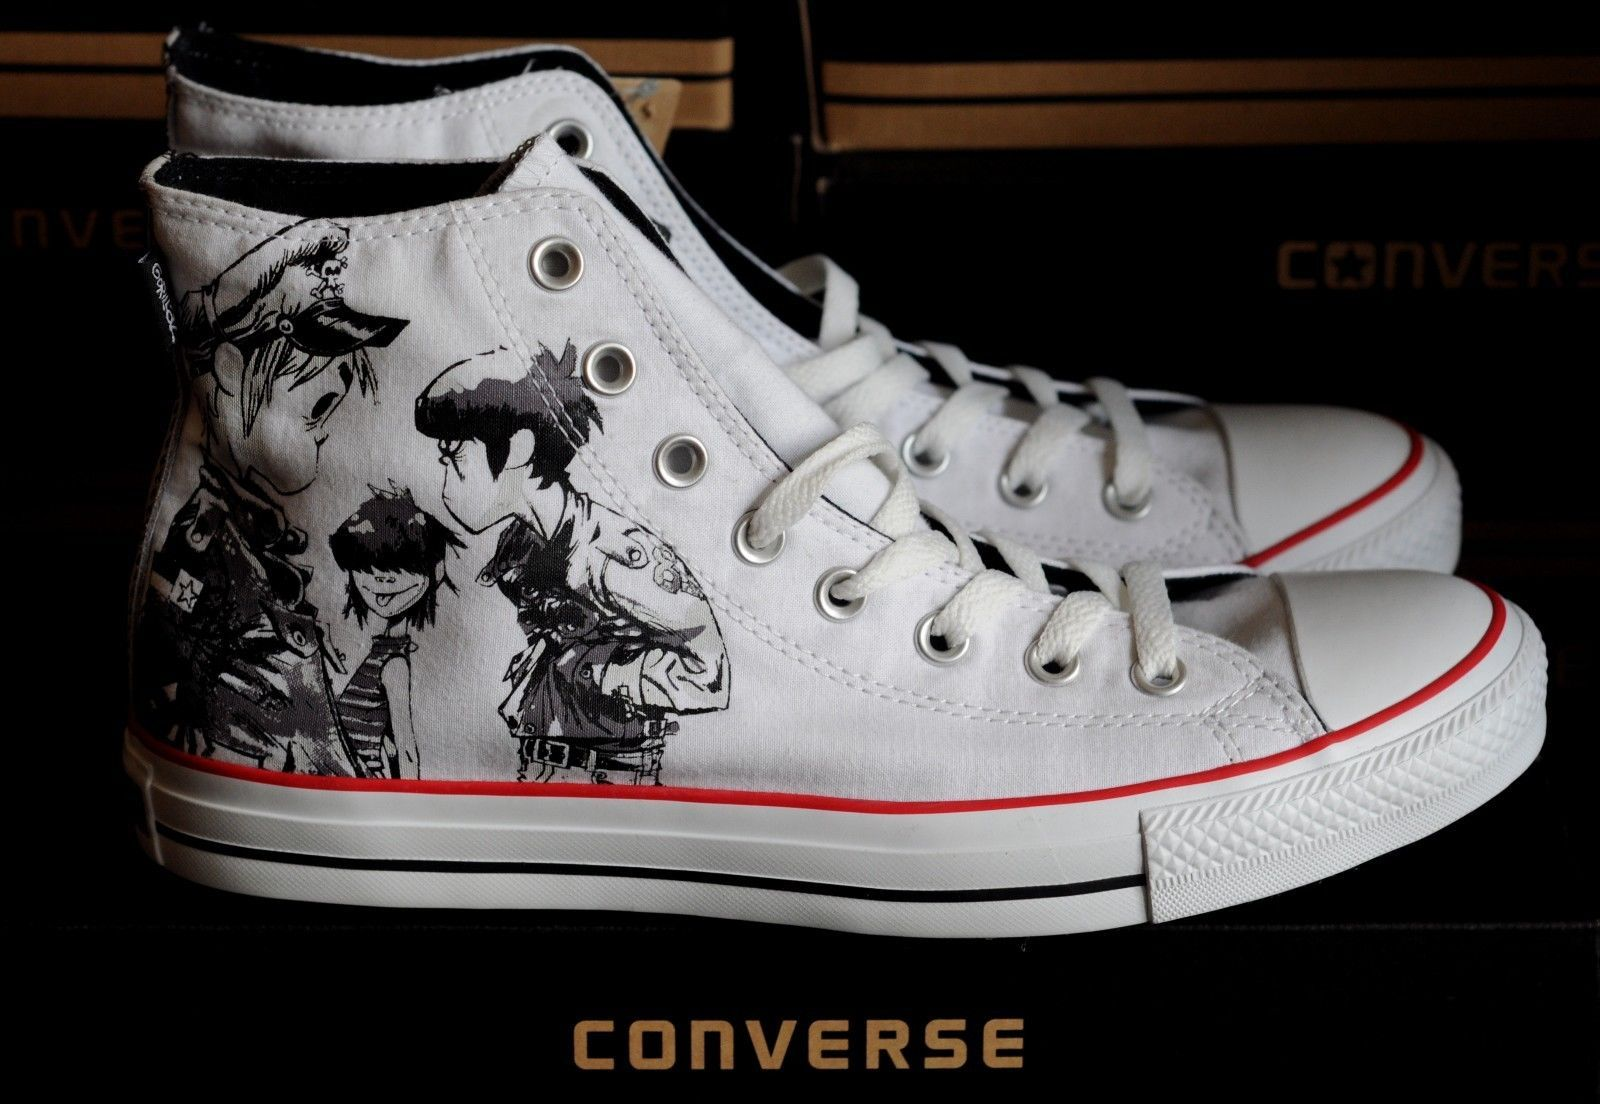 15913694bdac0 Gorillaz Converse All Star Chuck Taylor Limited Edition Comic rare ...